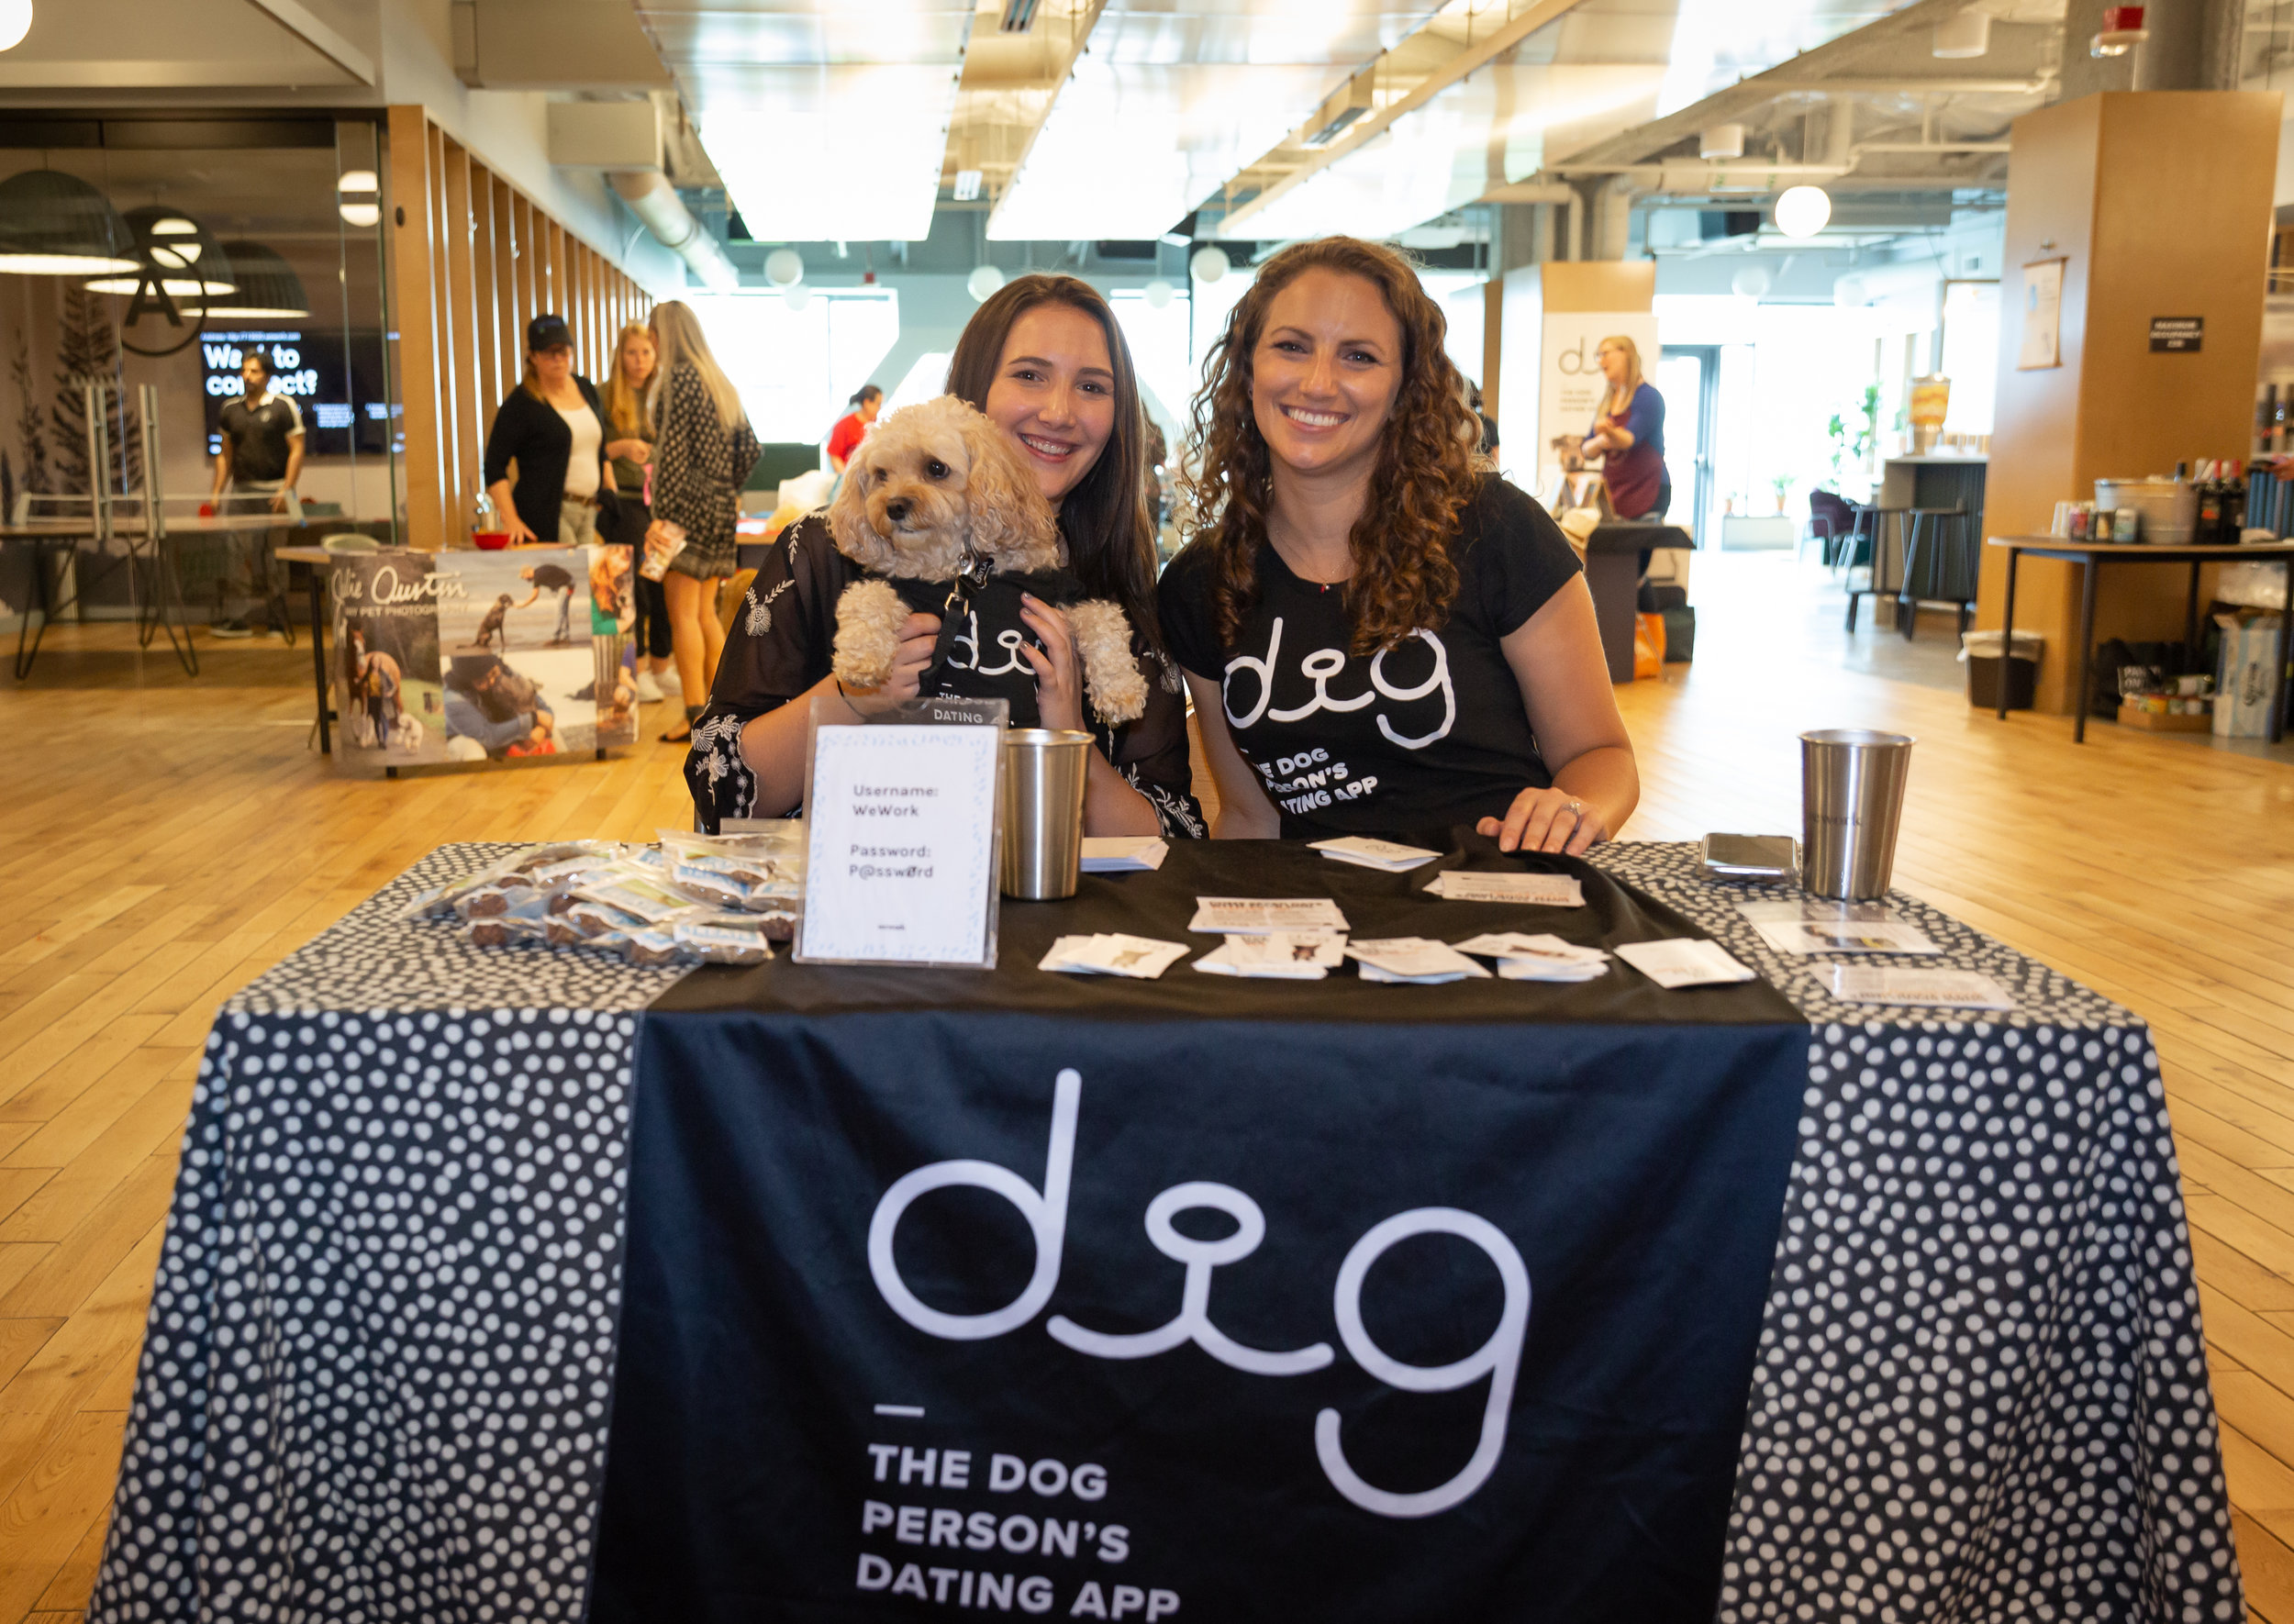 Dig_Dates_Bellevue_Event-10.jpg